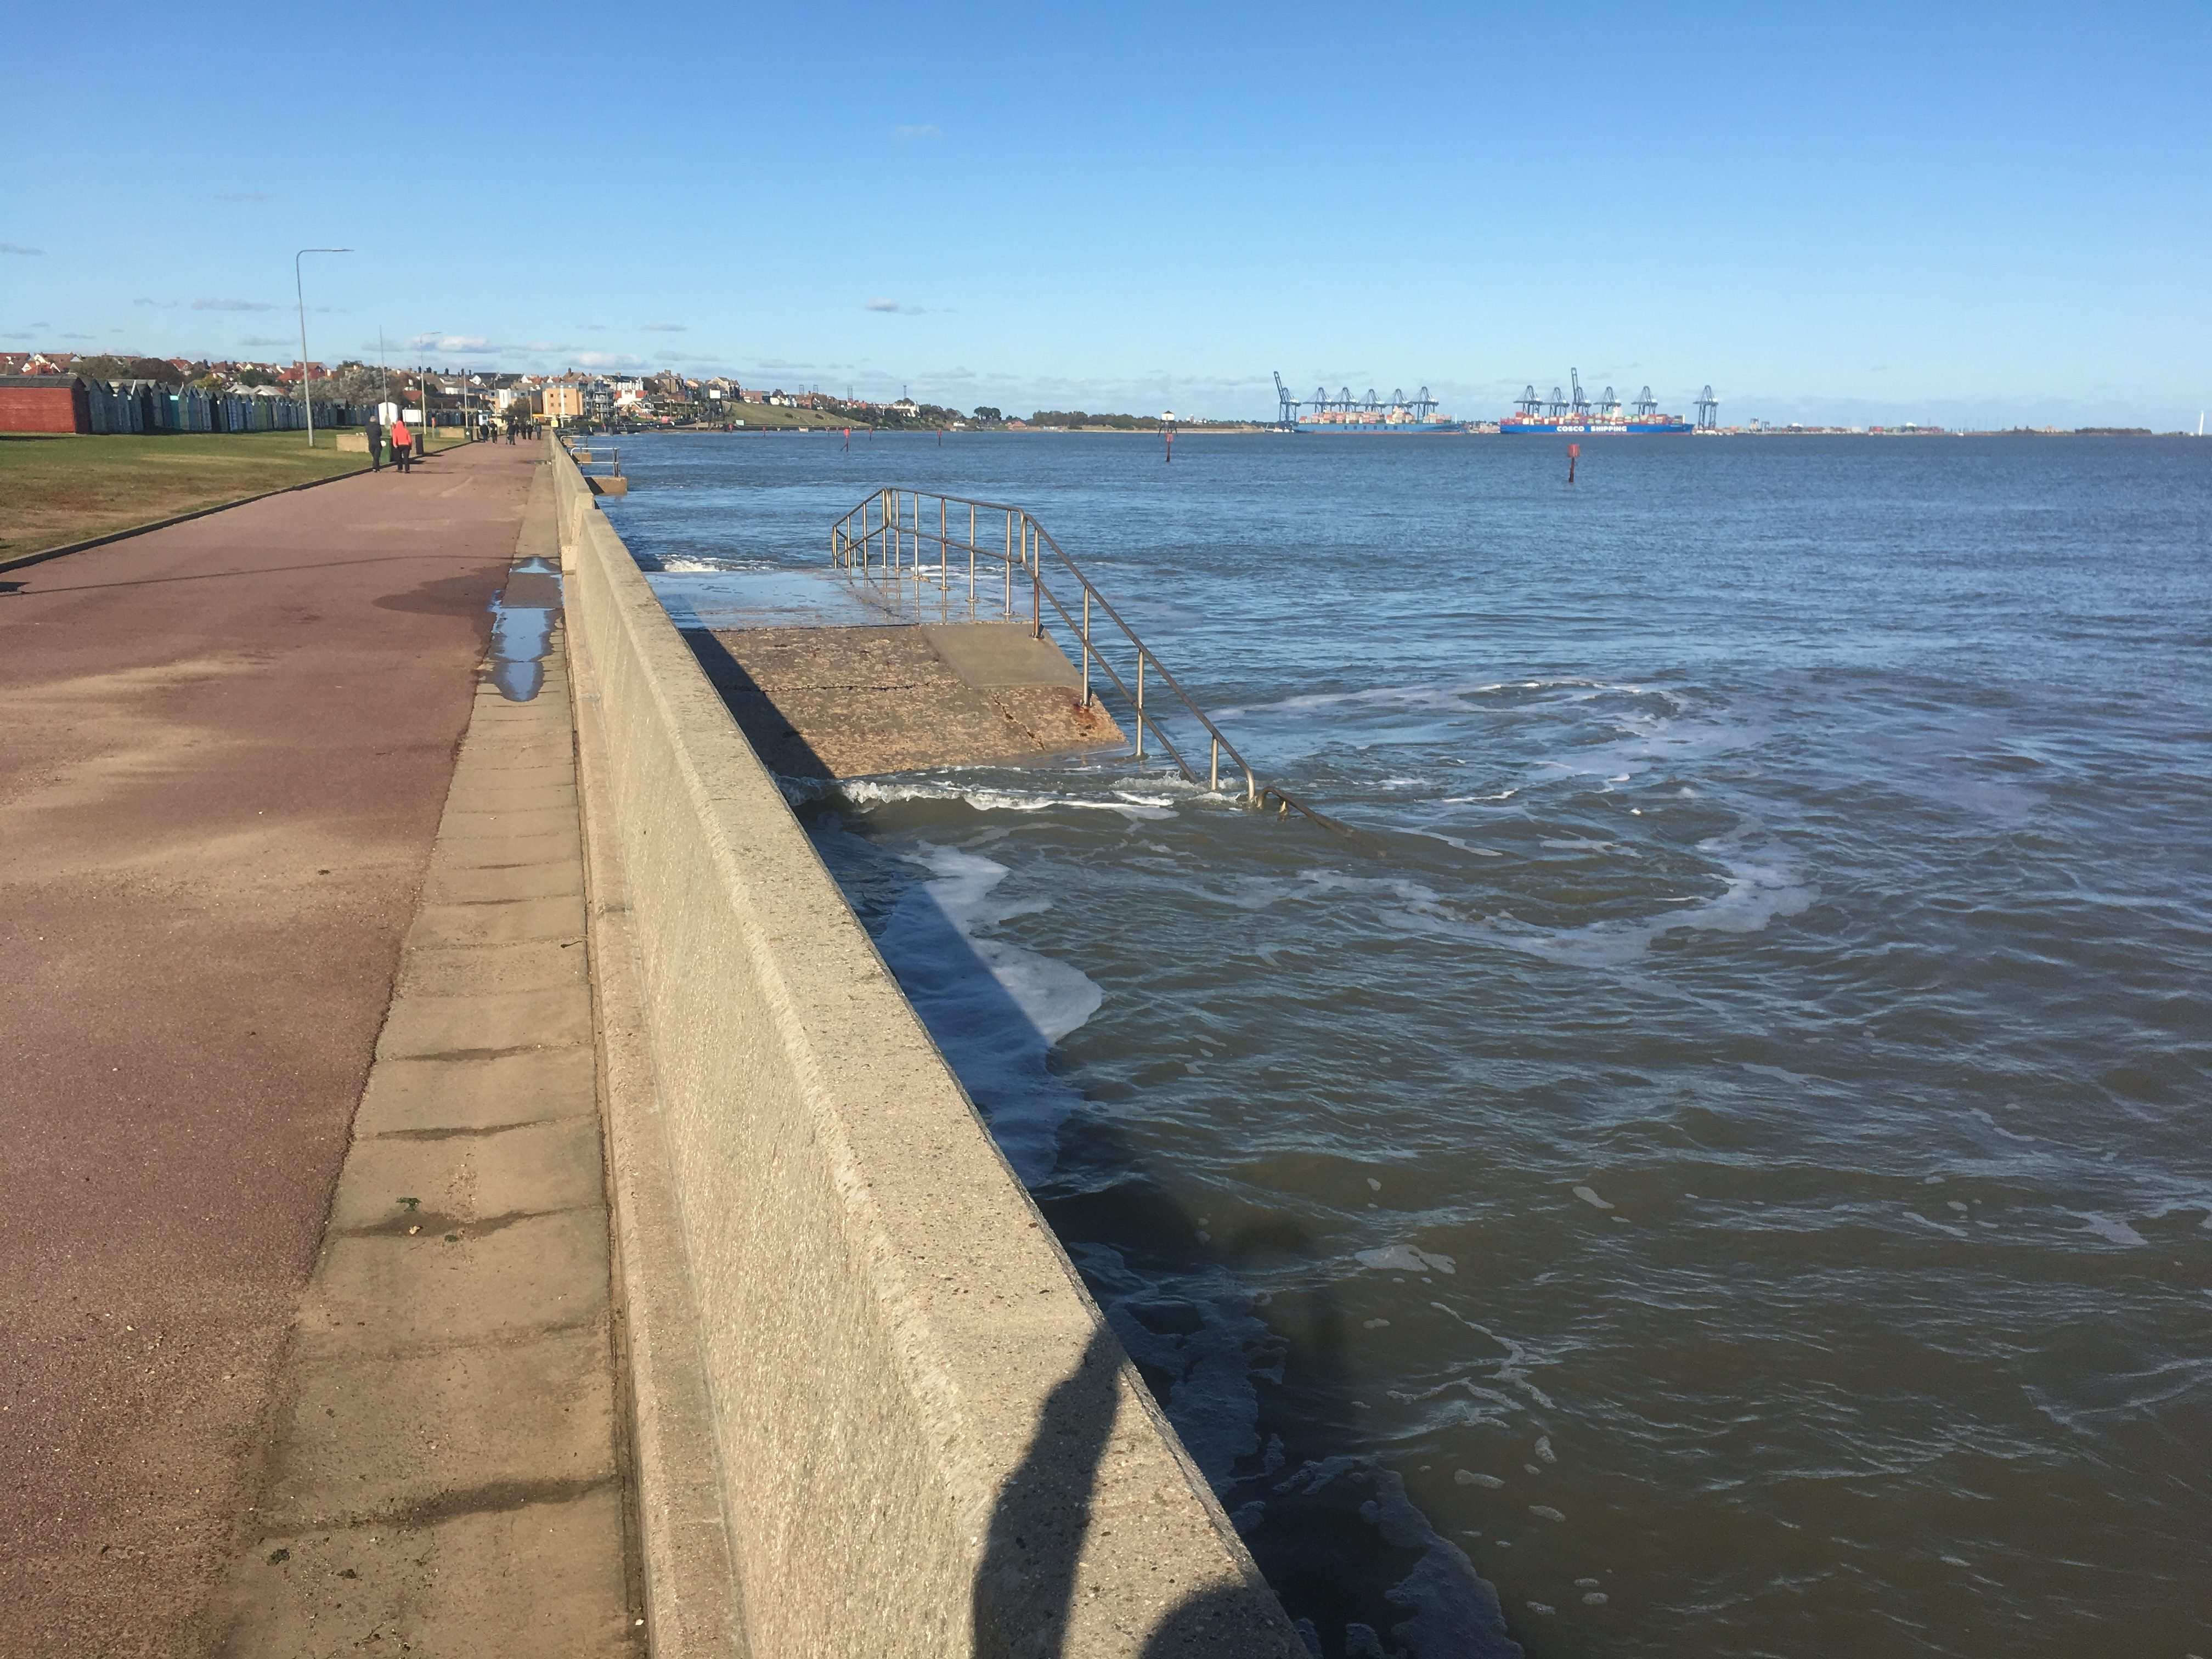 Walking beside the beach (?) looking over to Harwich Port